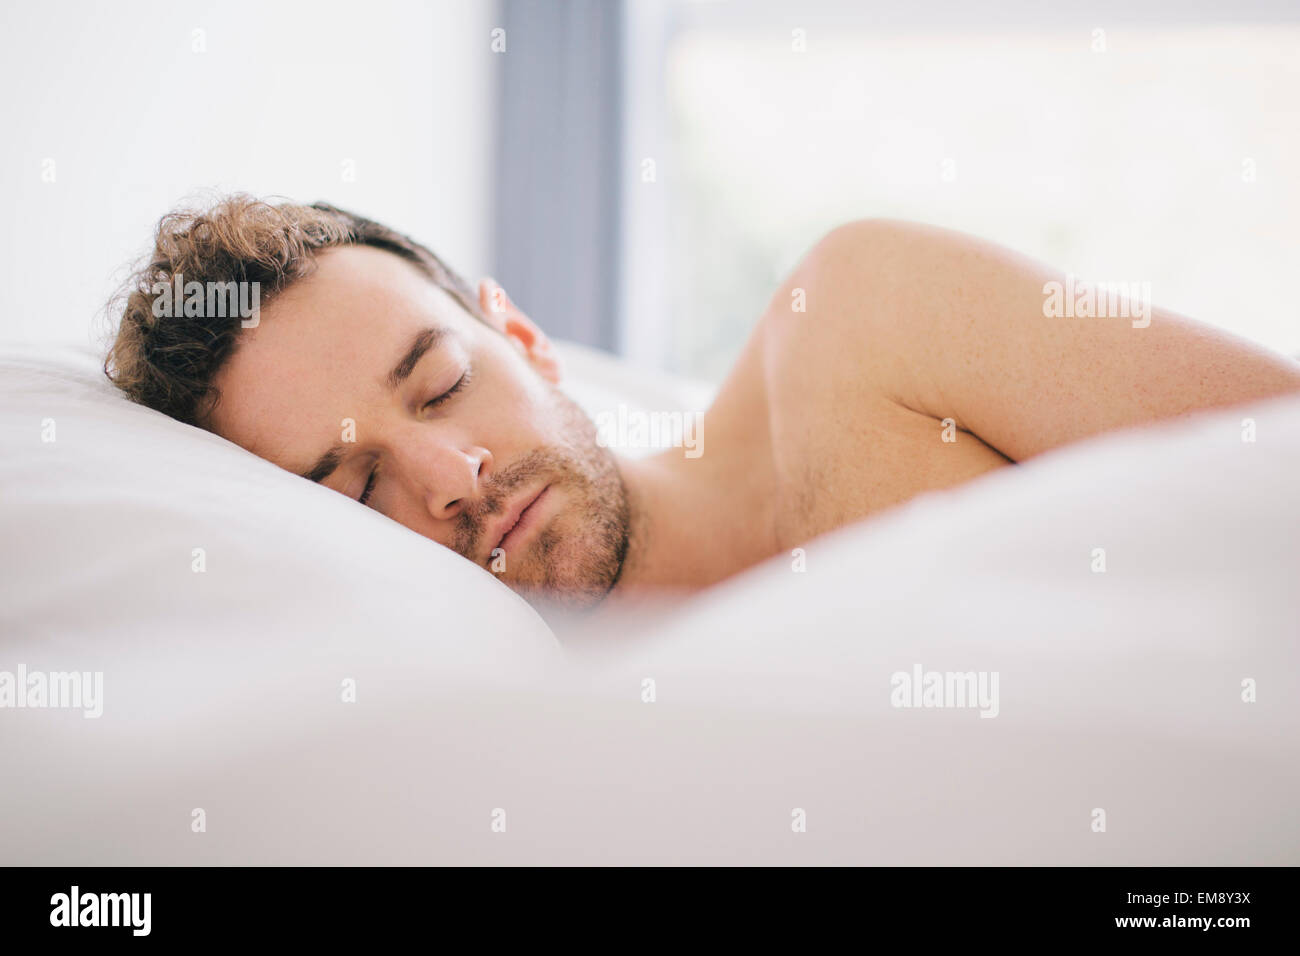 Young man lying on side asleep in bed - Stock Image